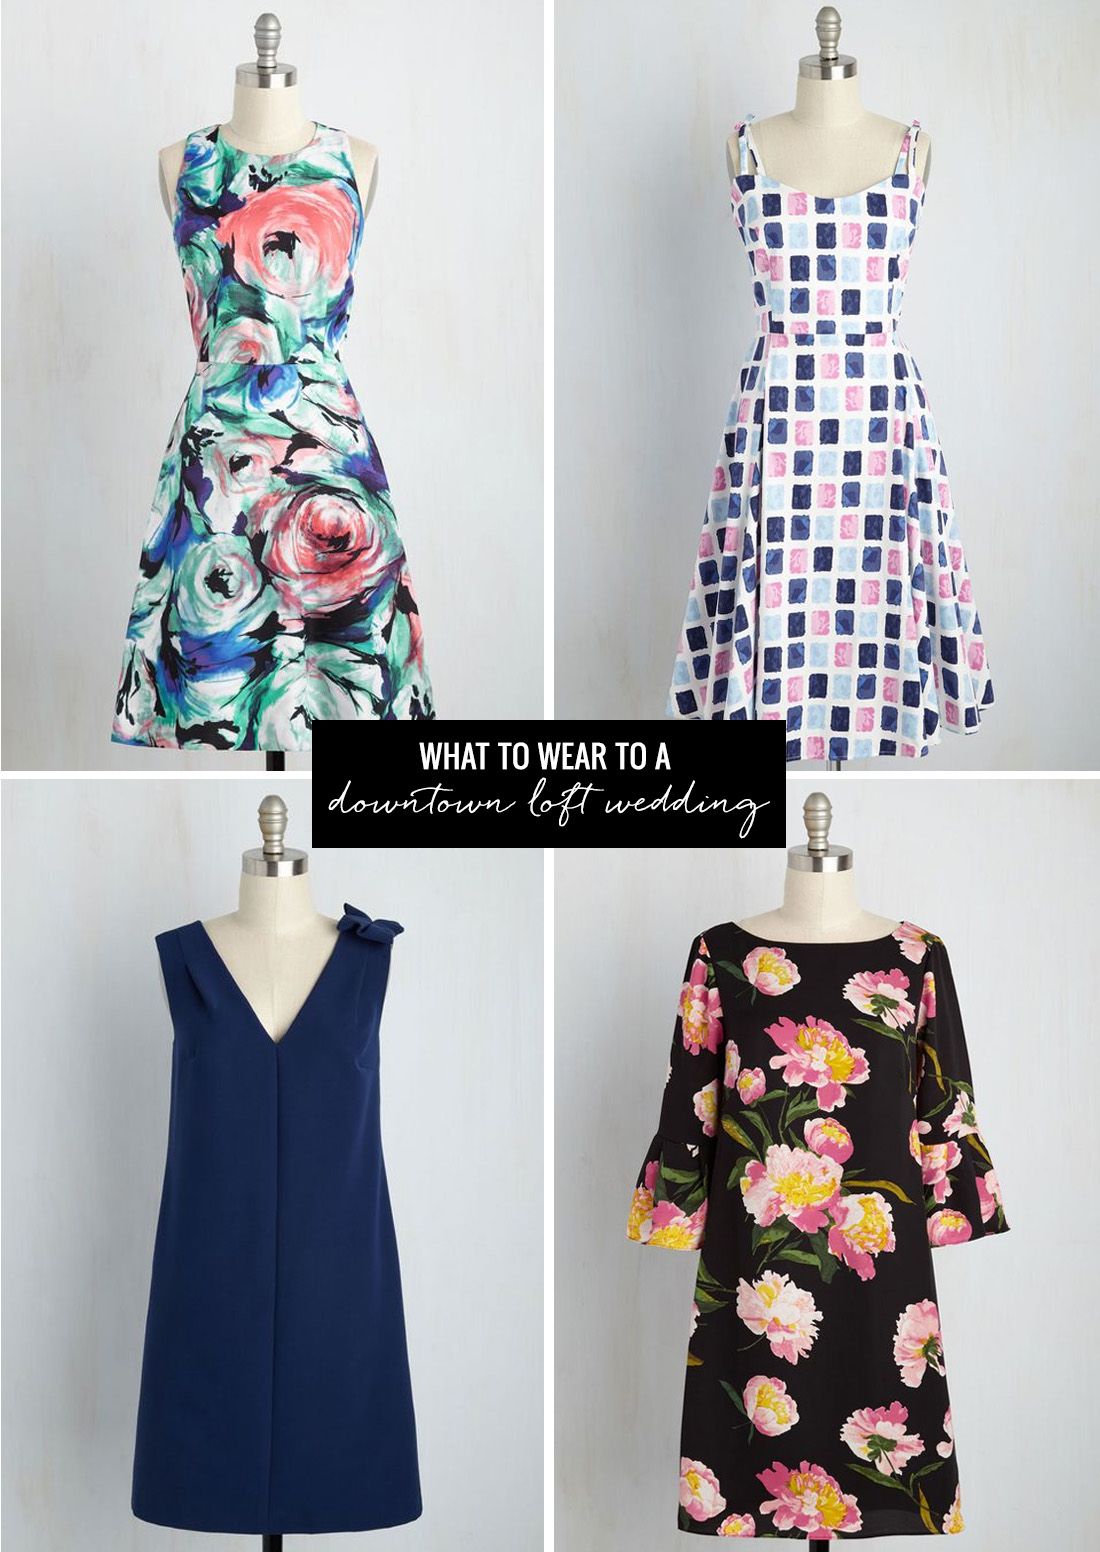 what to wear to a downtown loft wedding